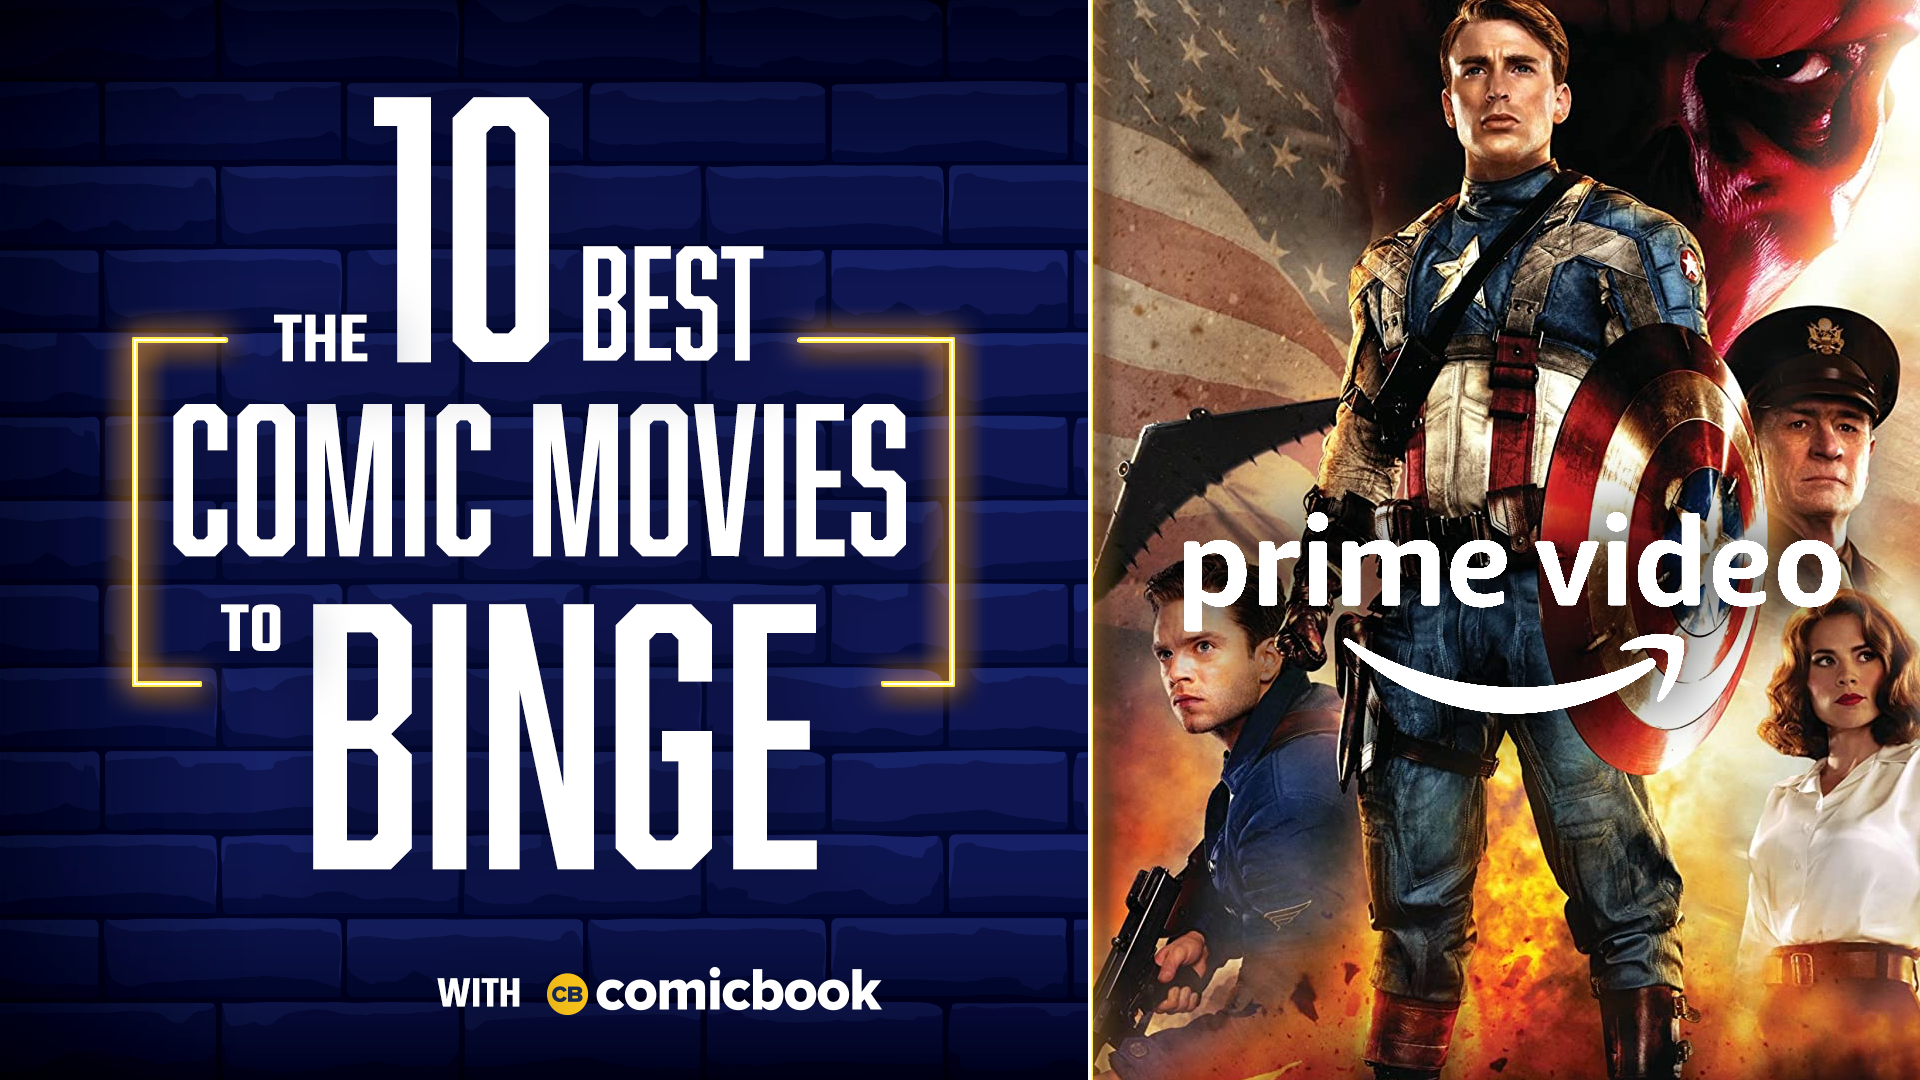 10 Best ComicBook Movies to Binge on Amazon Prime